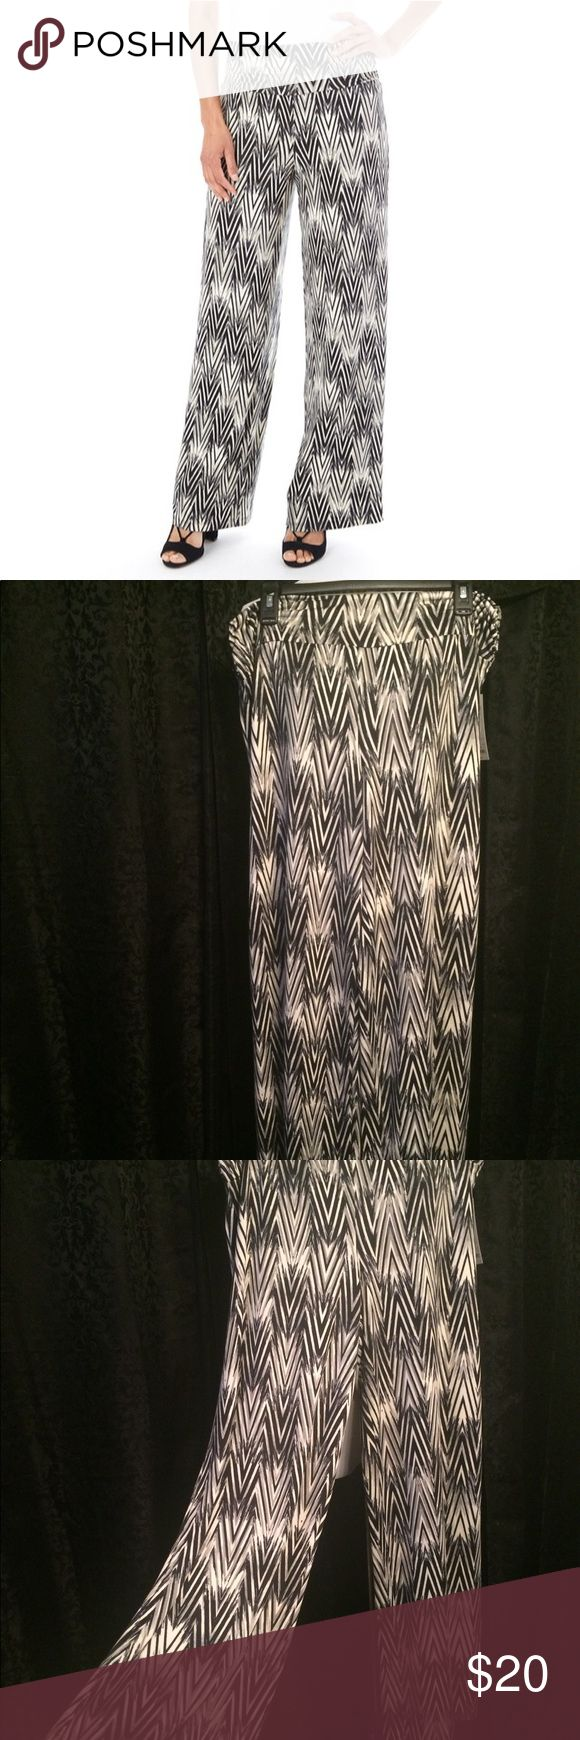 🎉just listed🆕🔘Palazzo b&w chevron pants🔘🆕 🆕🔘Palazzo black & white chevron pants🔘🆕. Size XL. Mid rise. Wide leg. Elastic waistband. Chevron design in black & white (& what appears to be gray in between). Apt. 9 Pants Wide Leg